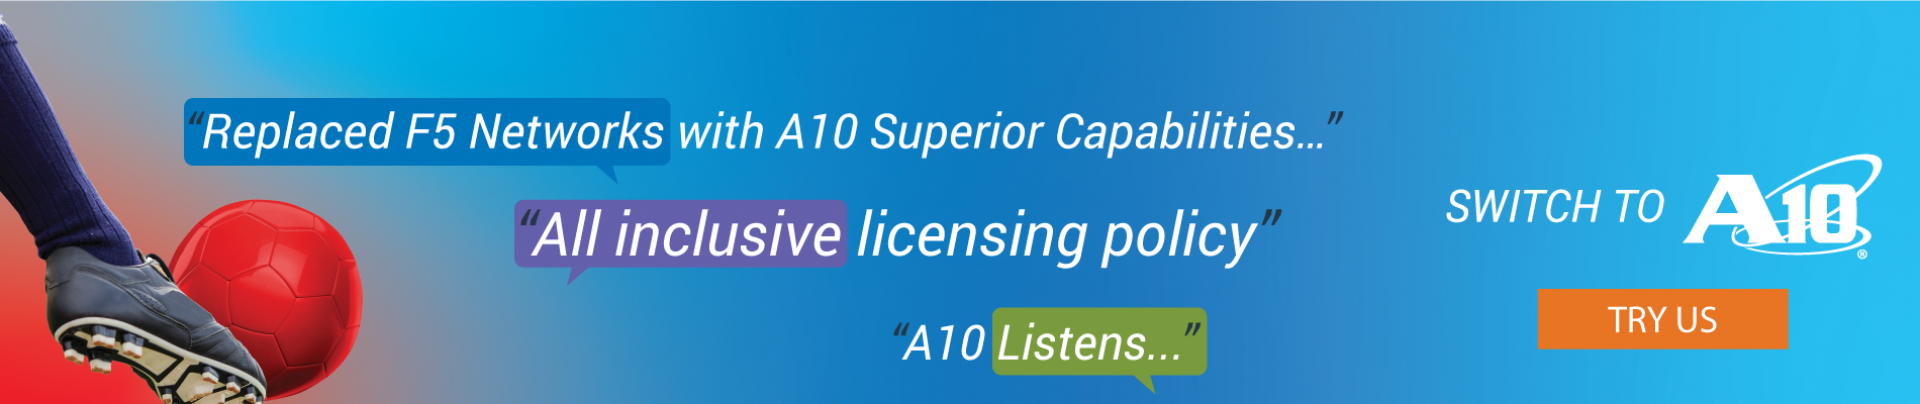 Switch to A10 Networks!